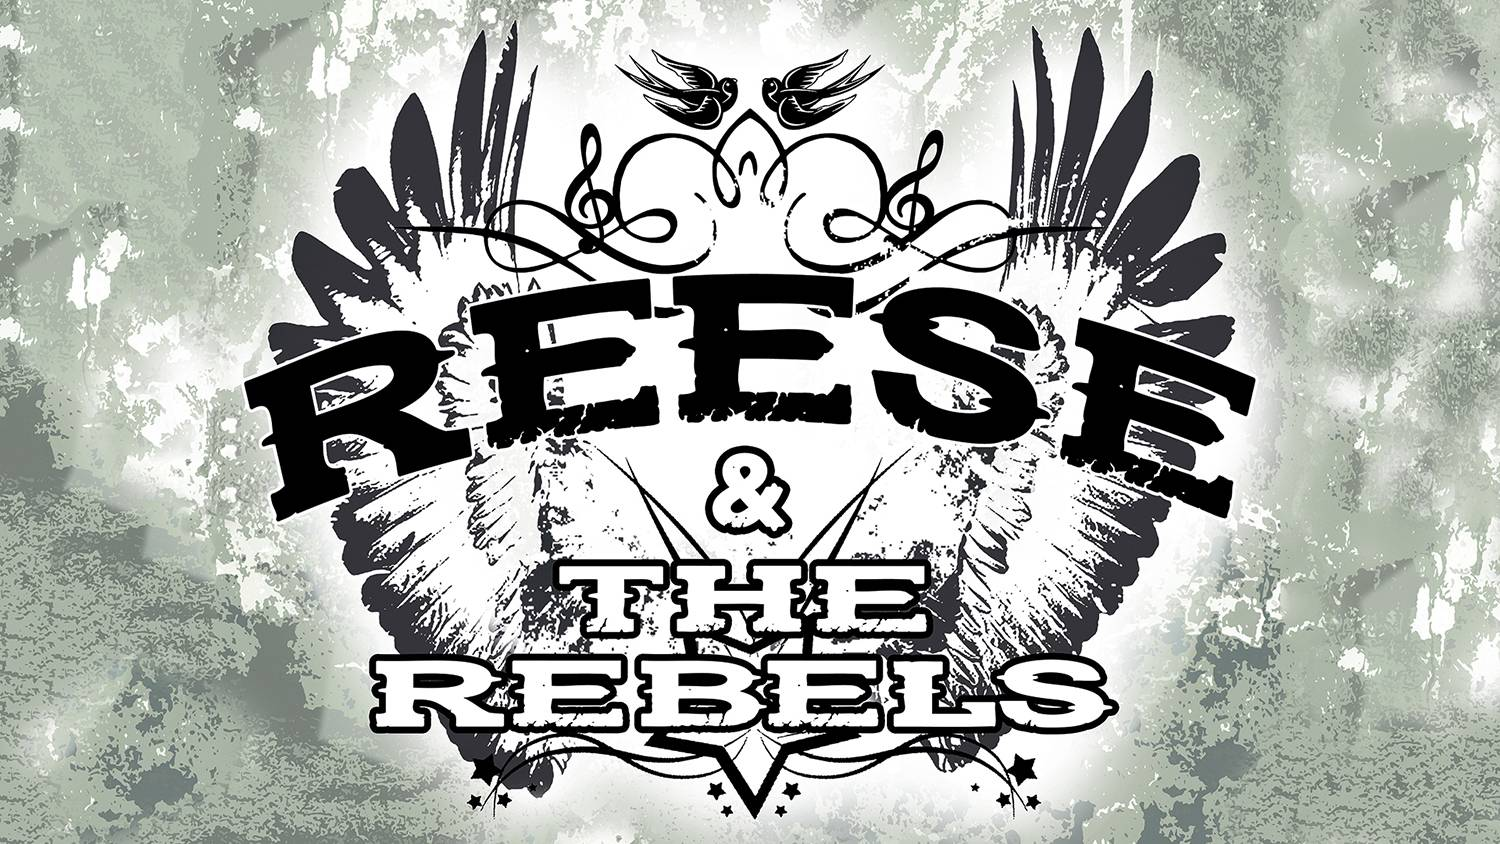 Wallpaper Reese & The Rebels 1920x1080